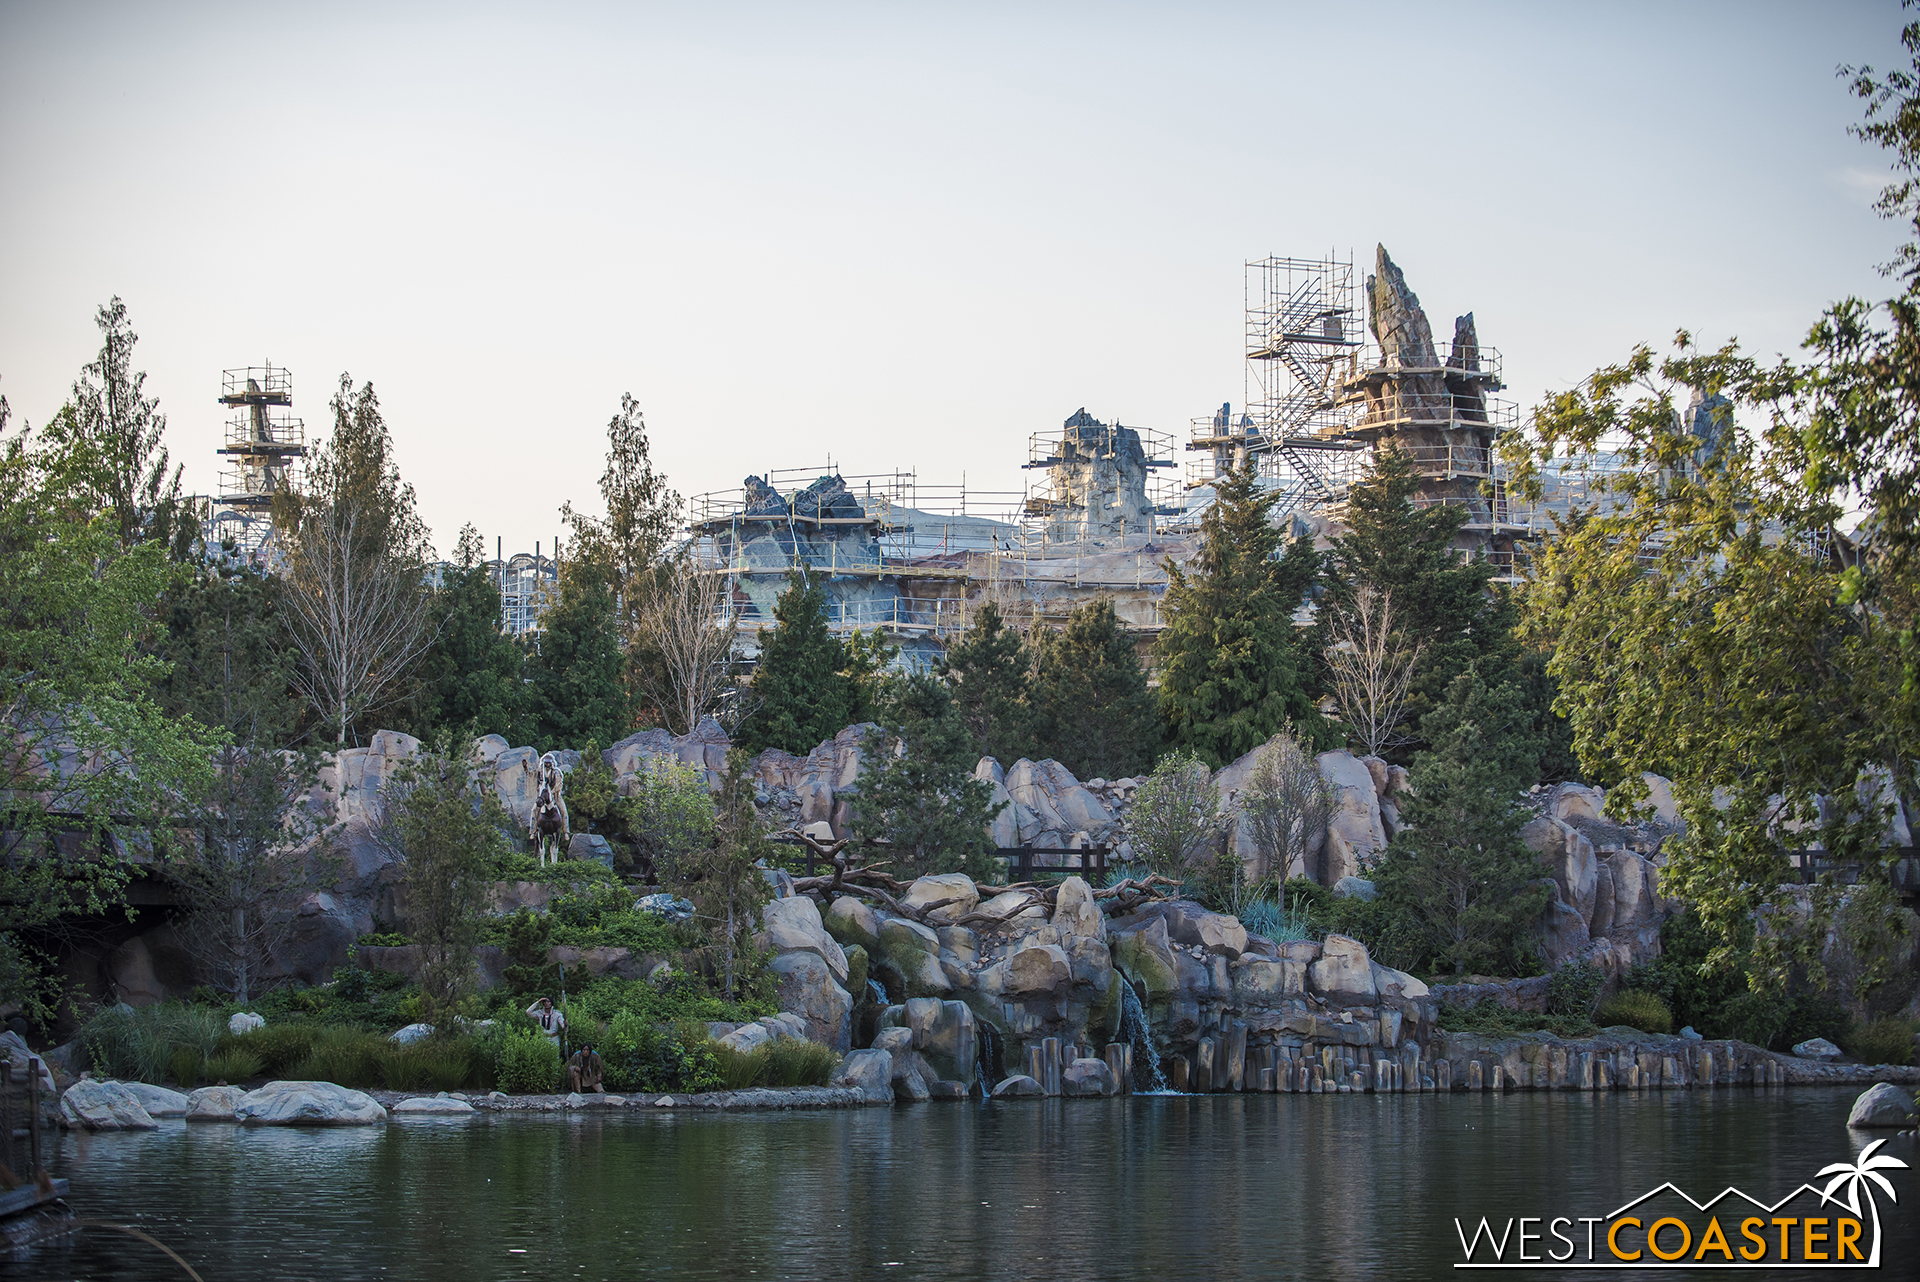 And on the Rivers of America side, they're really starting to get prominent!